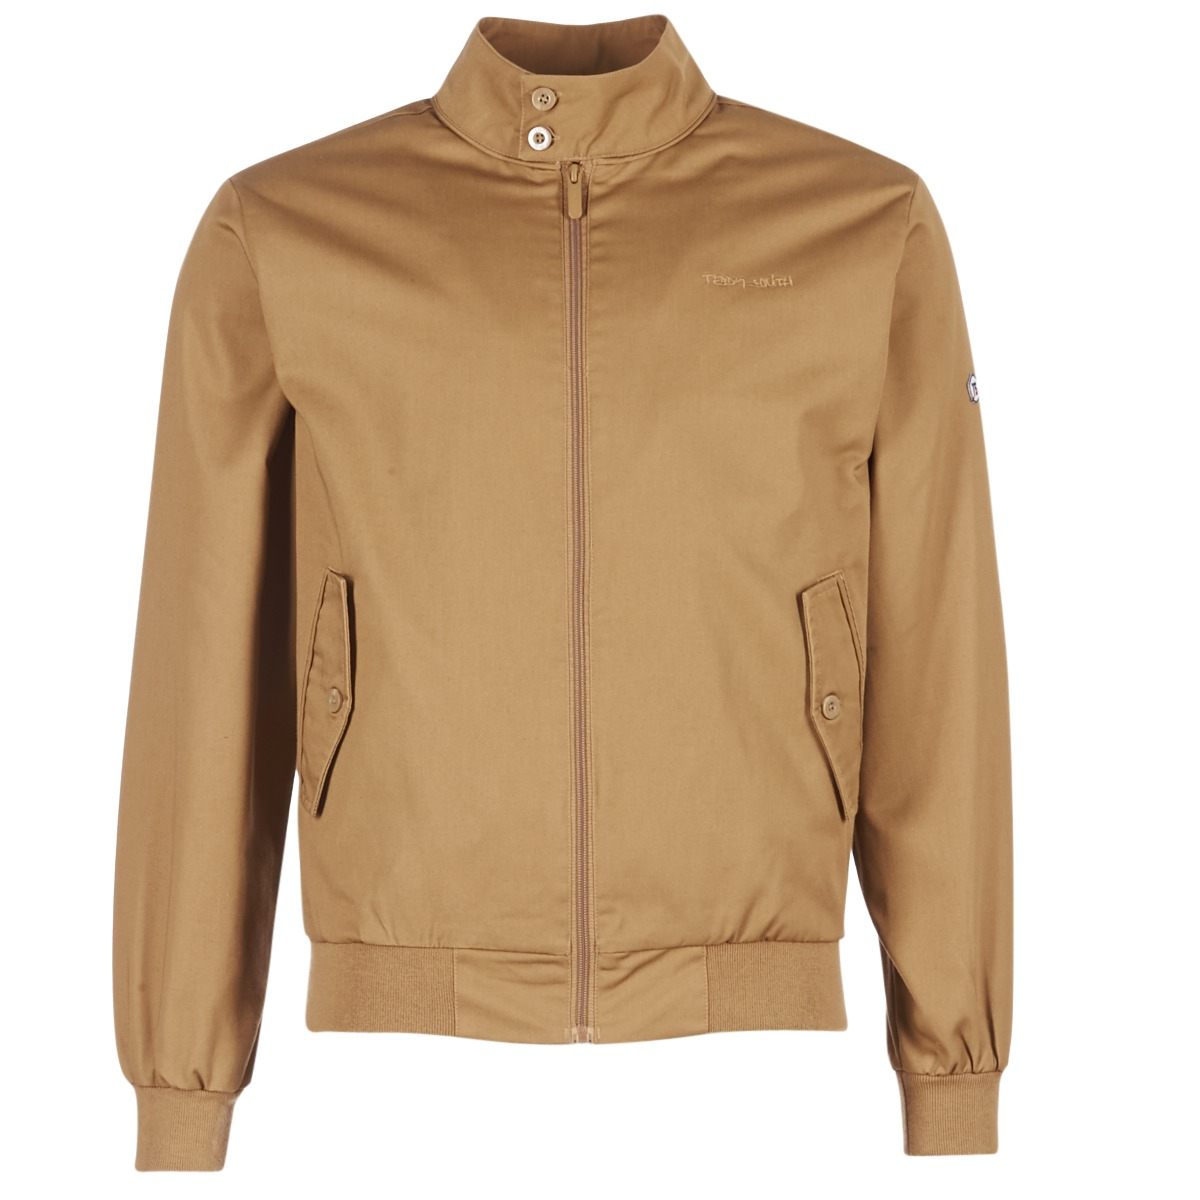 blouson-teddy-smith-swigger-2-worker-beige.jpg